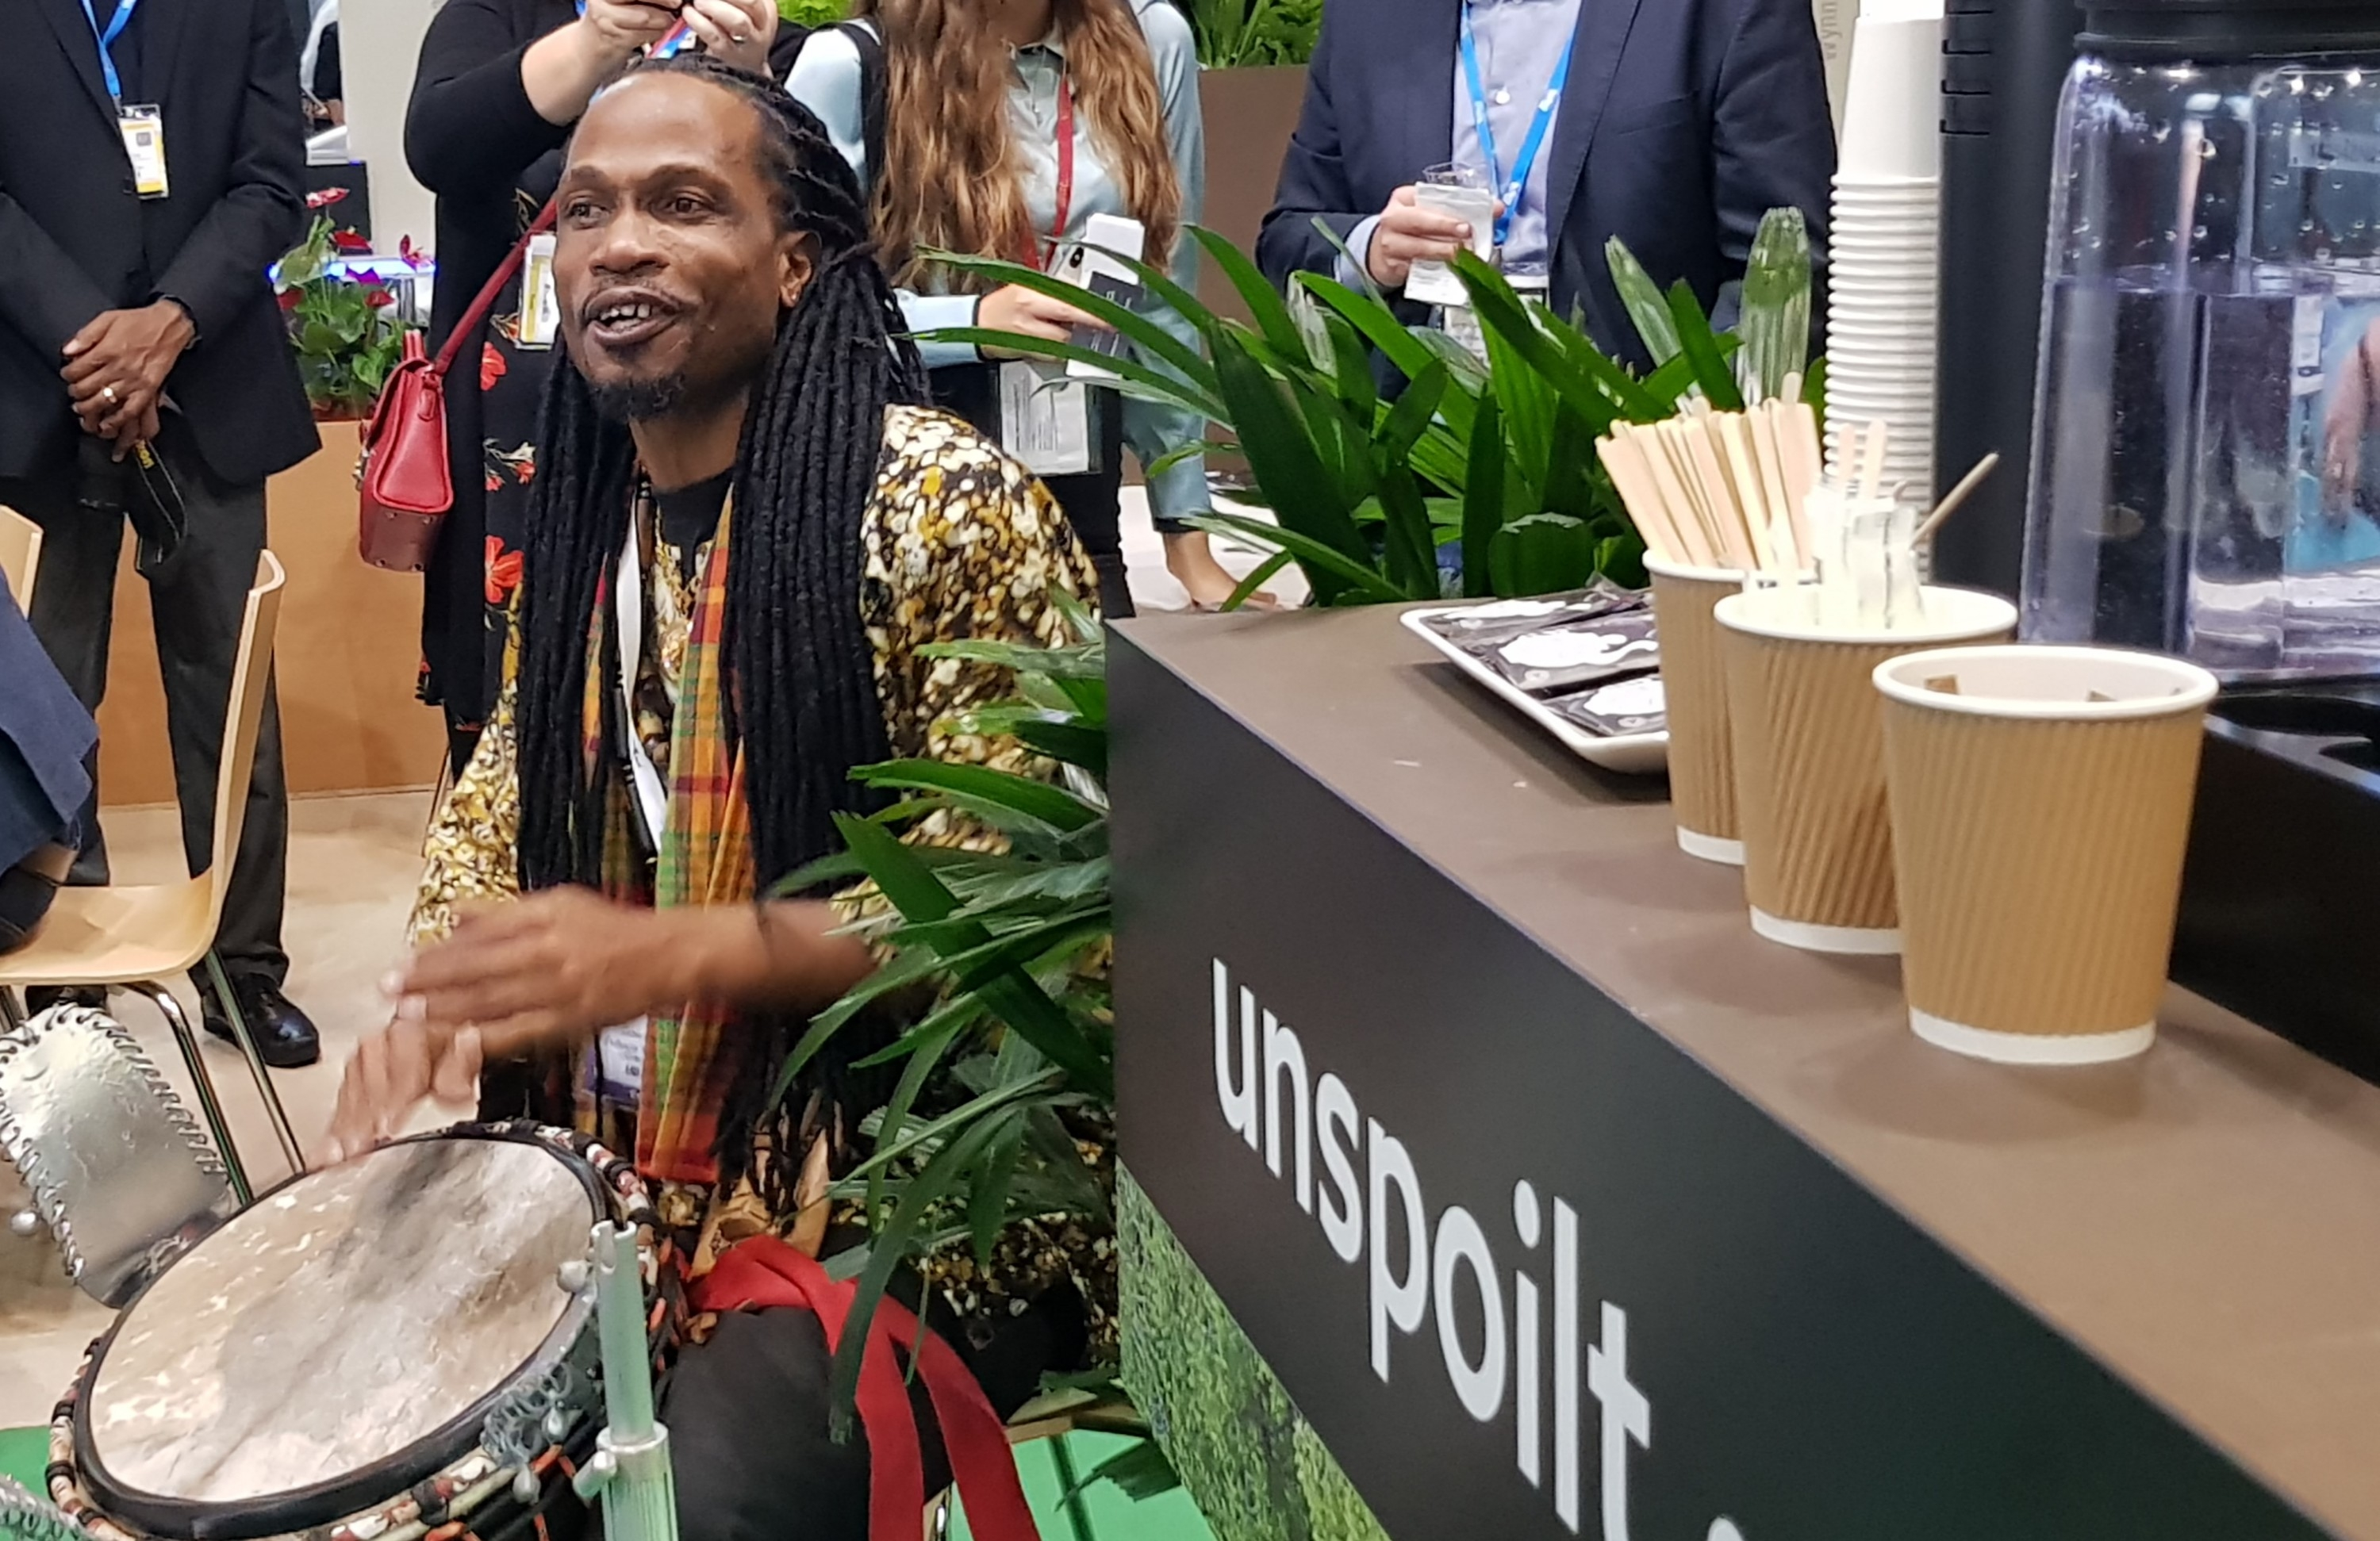 Drummer warming up the crowd before Tobago press conference at WTM